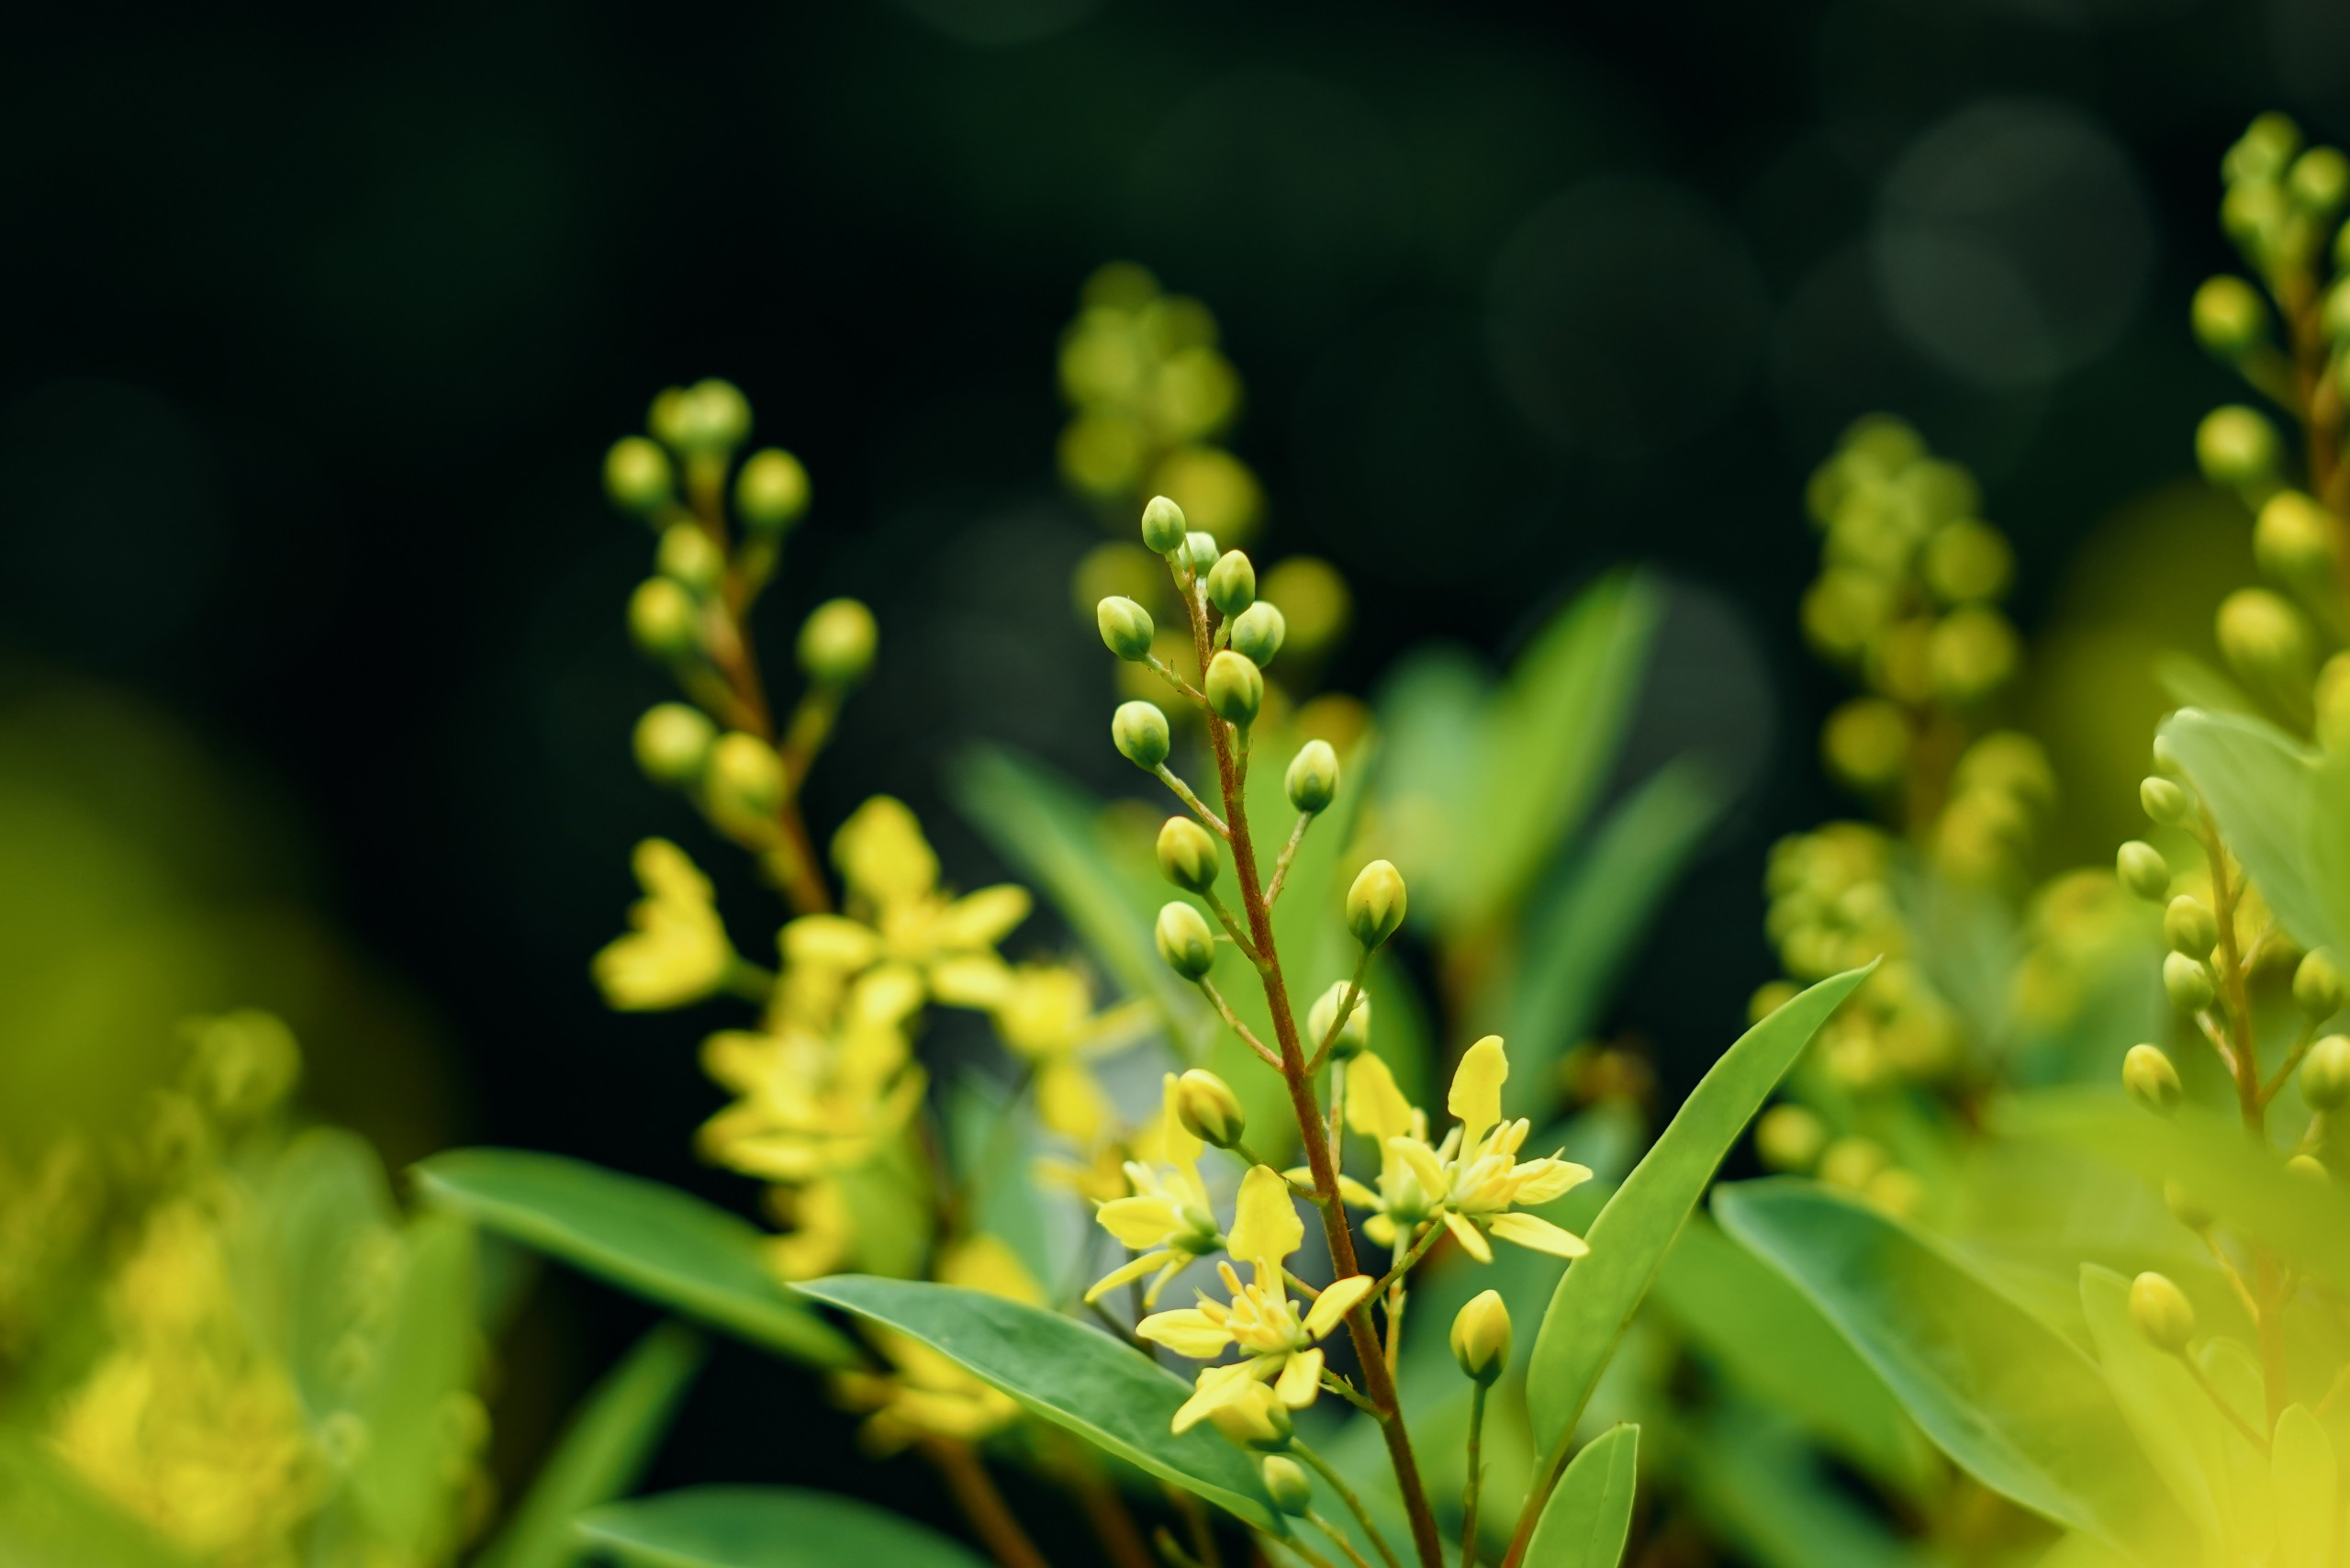 Yellow flowers and shrubs